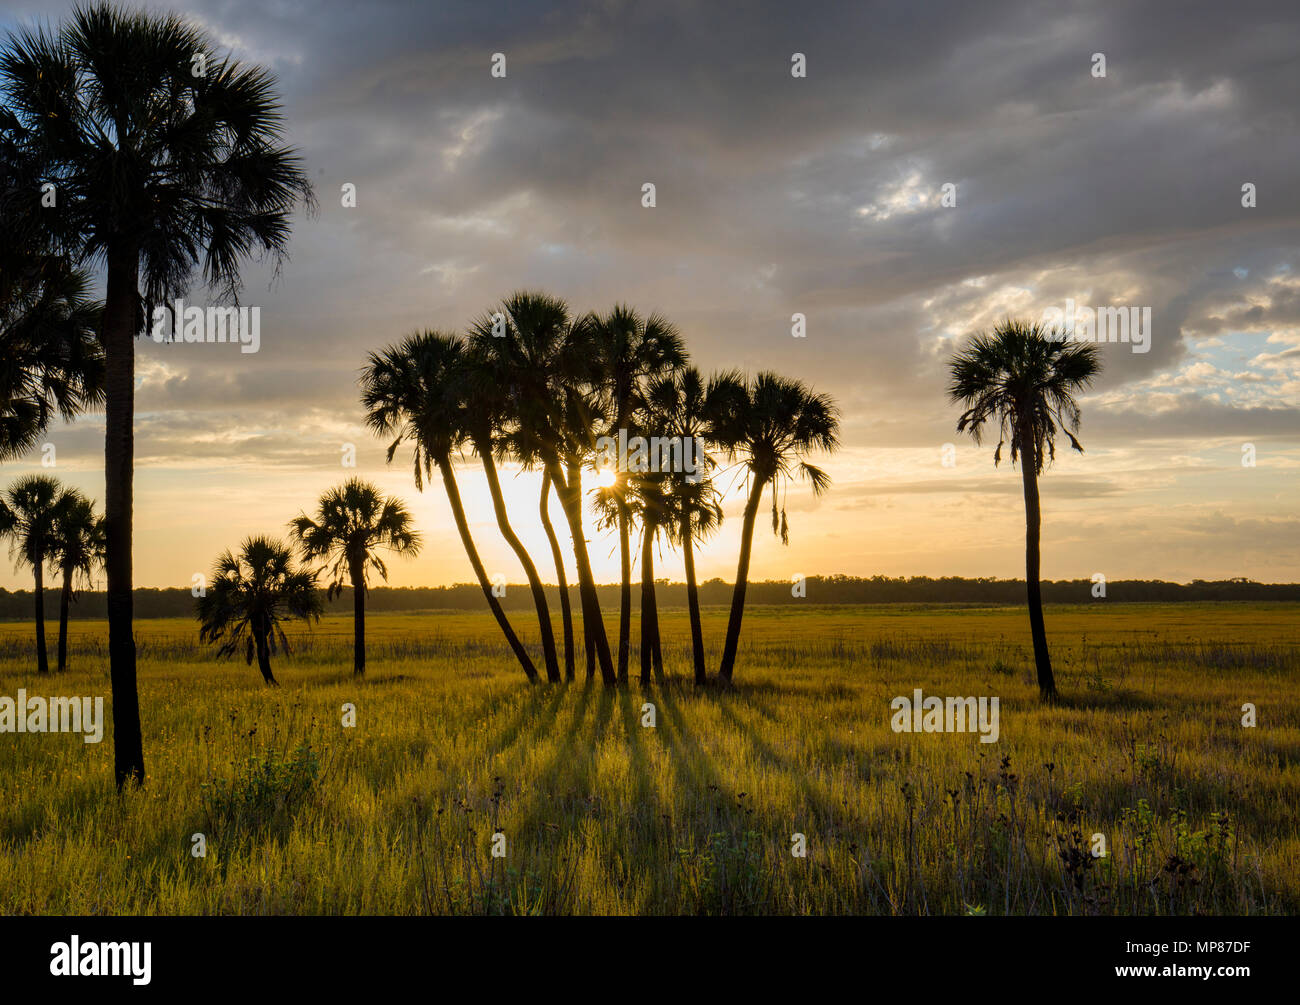 Late afternoon sun casting shadows from palm trees in Myakka River State Park in Sarasota Florida Stock Photo